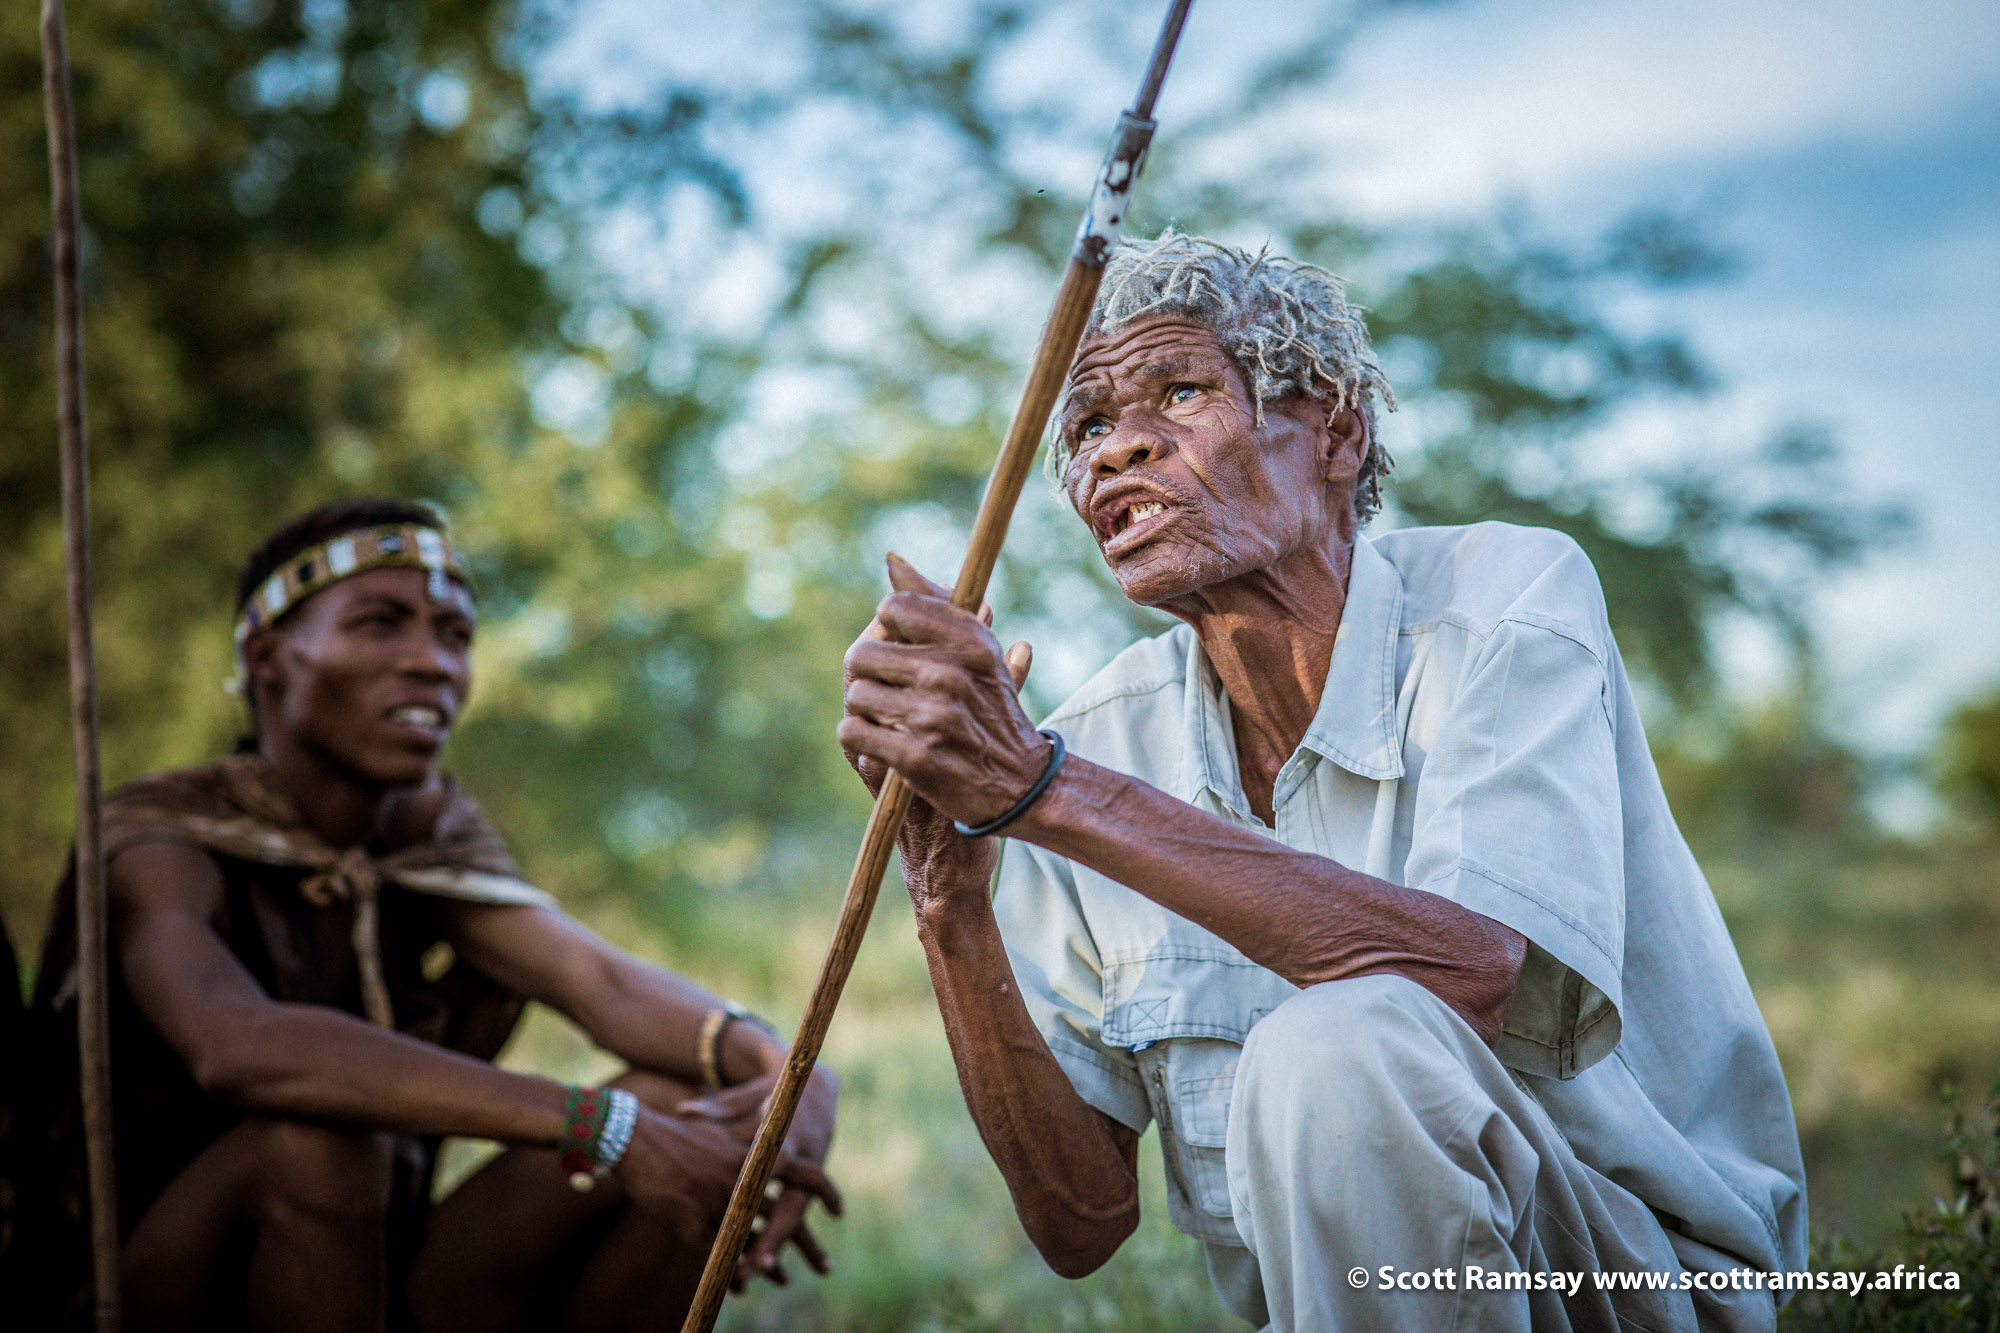 In a way, the Bushmen are a bridge back to the source of all humanity. I've always intellectually understood this fact, and appreciated it, but as I'm chatting to Cobra in person, there's a strangely powerful emotional impact.